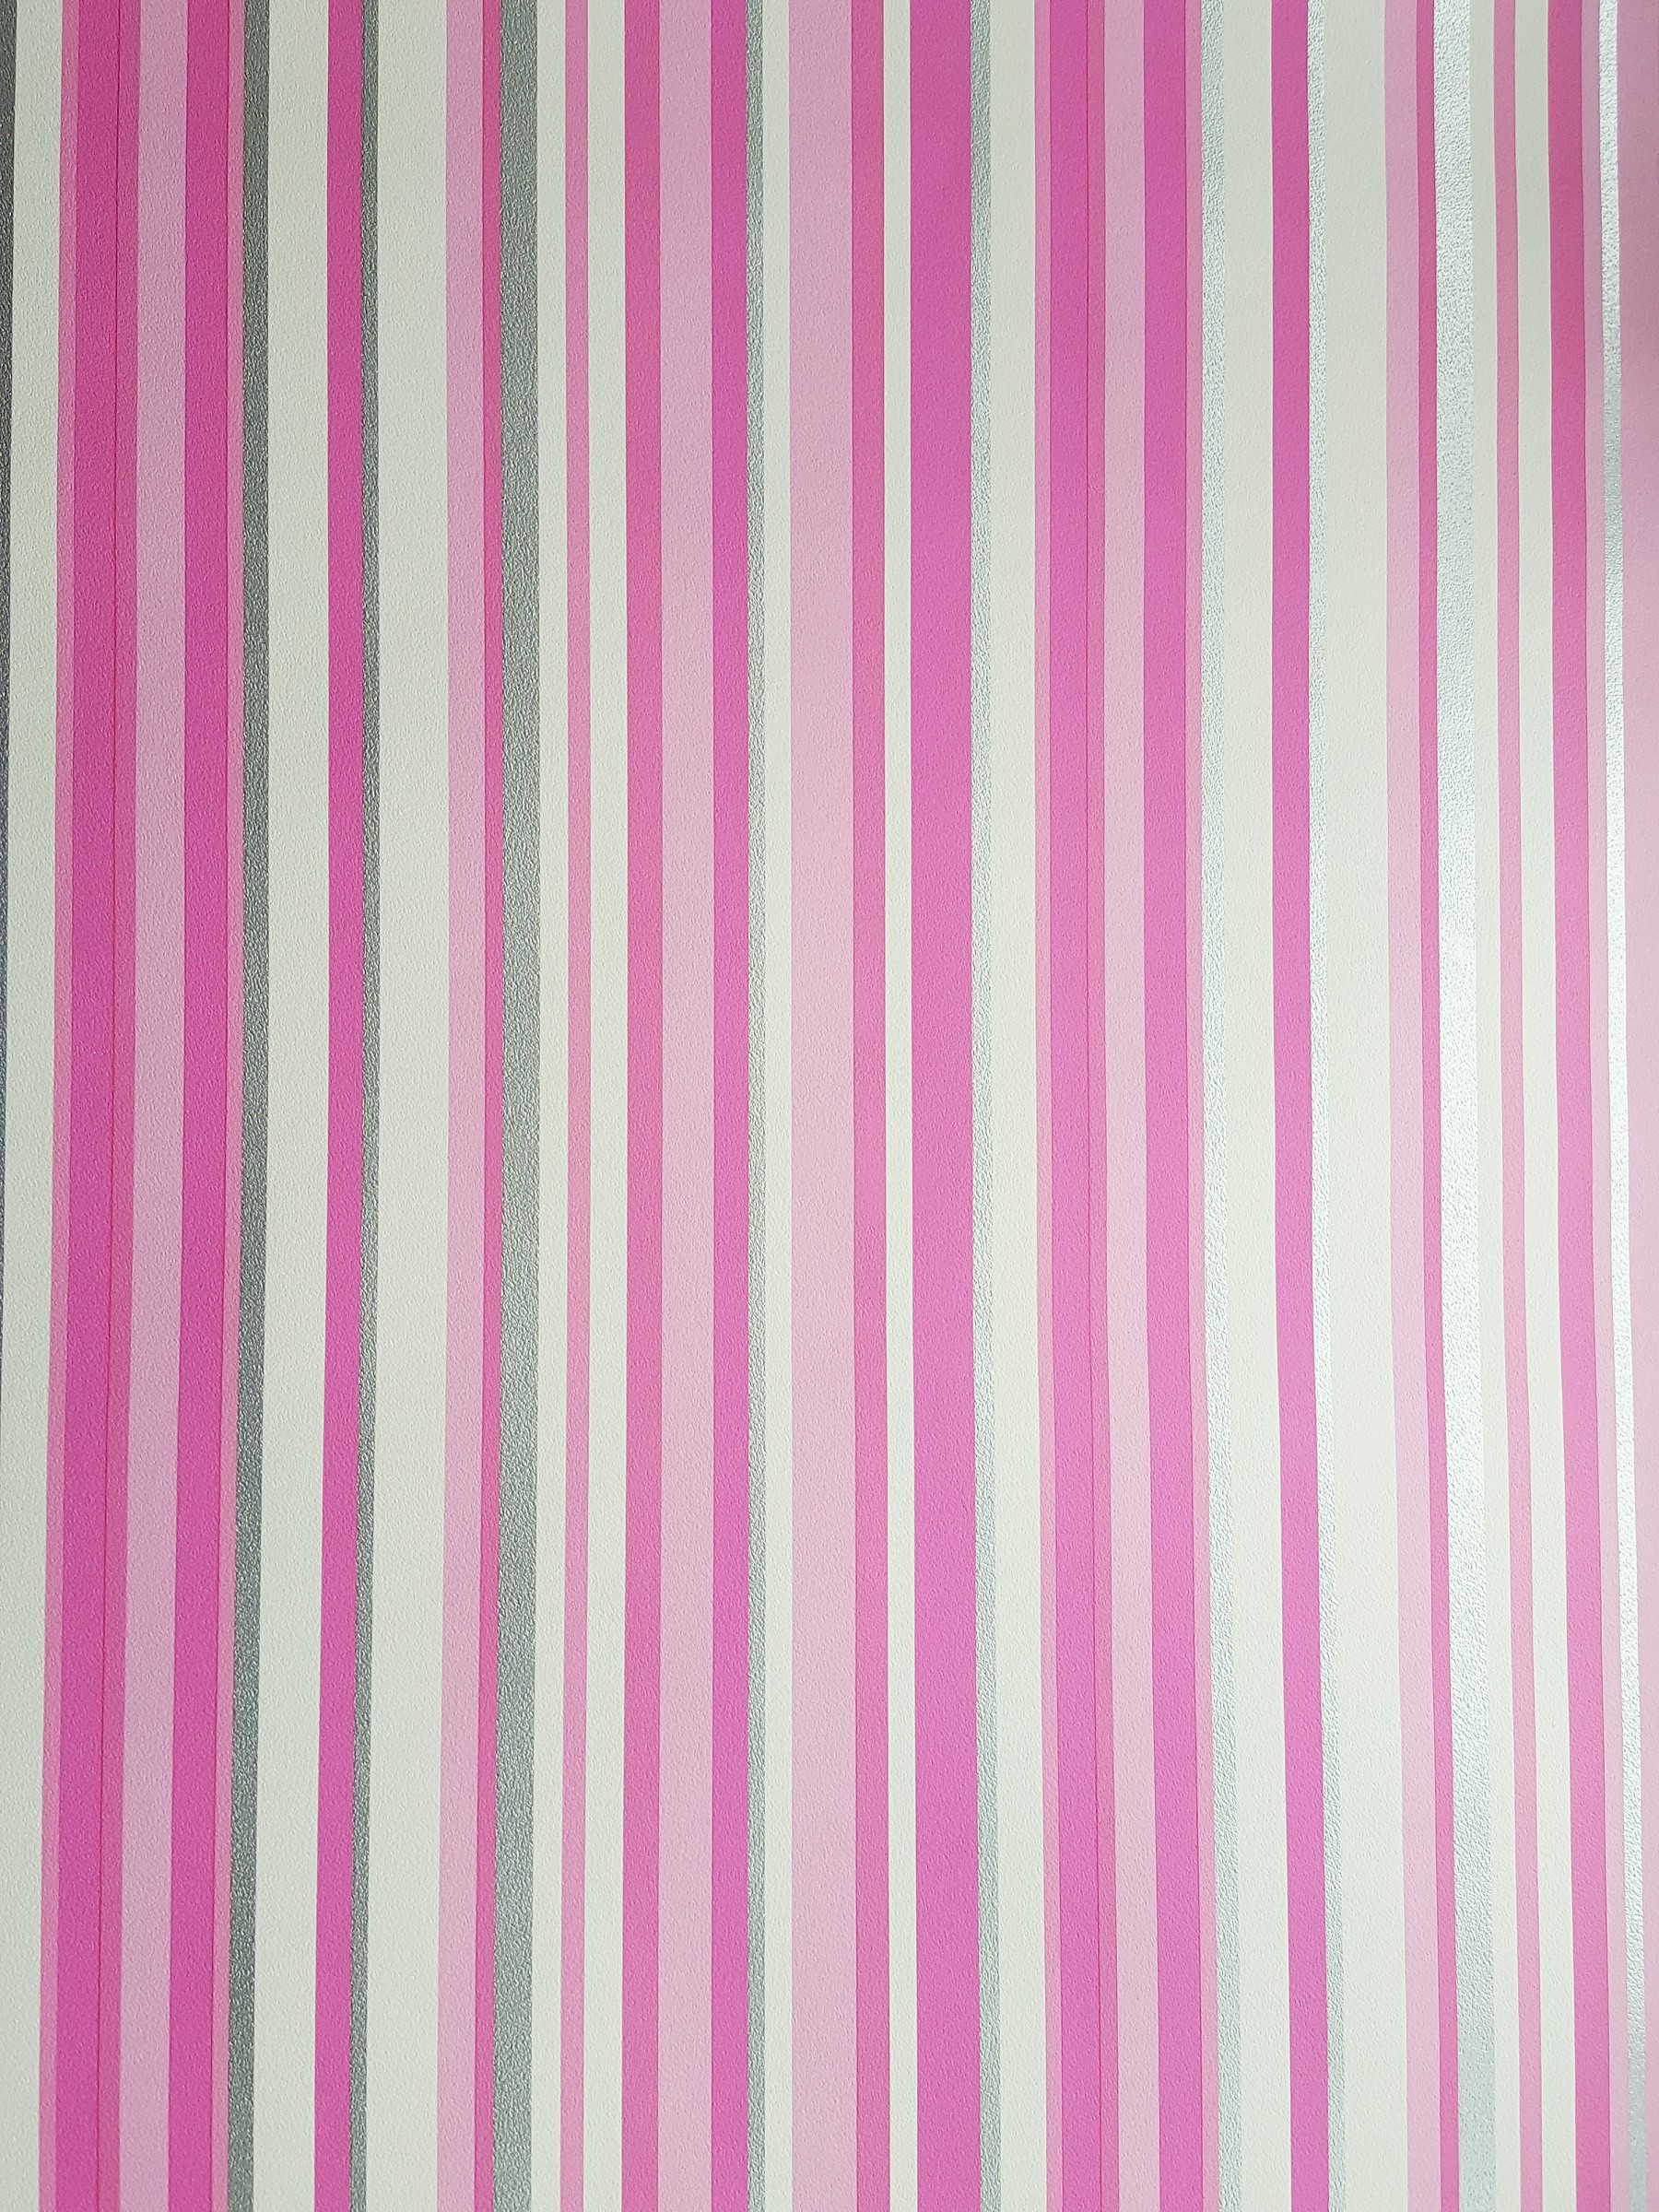 1800x2400 New Trend Girls Pink Silver White Barcode Stripe Wallpaper